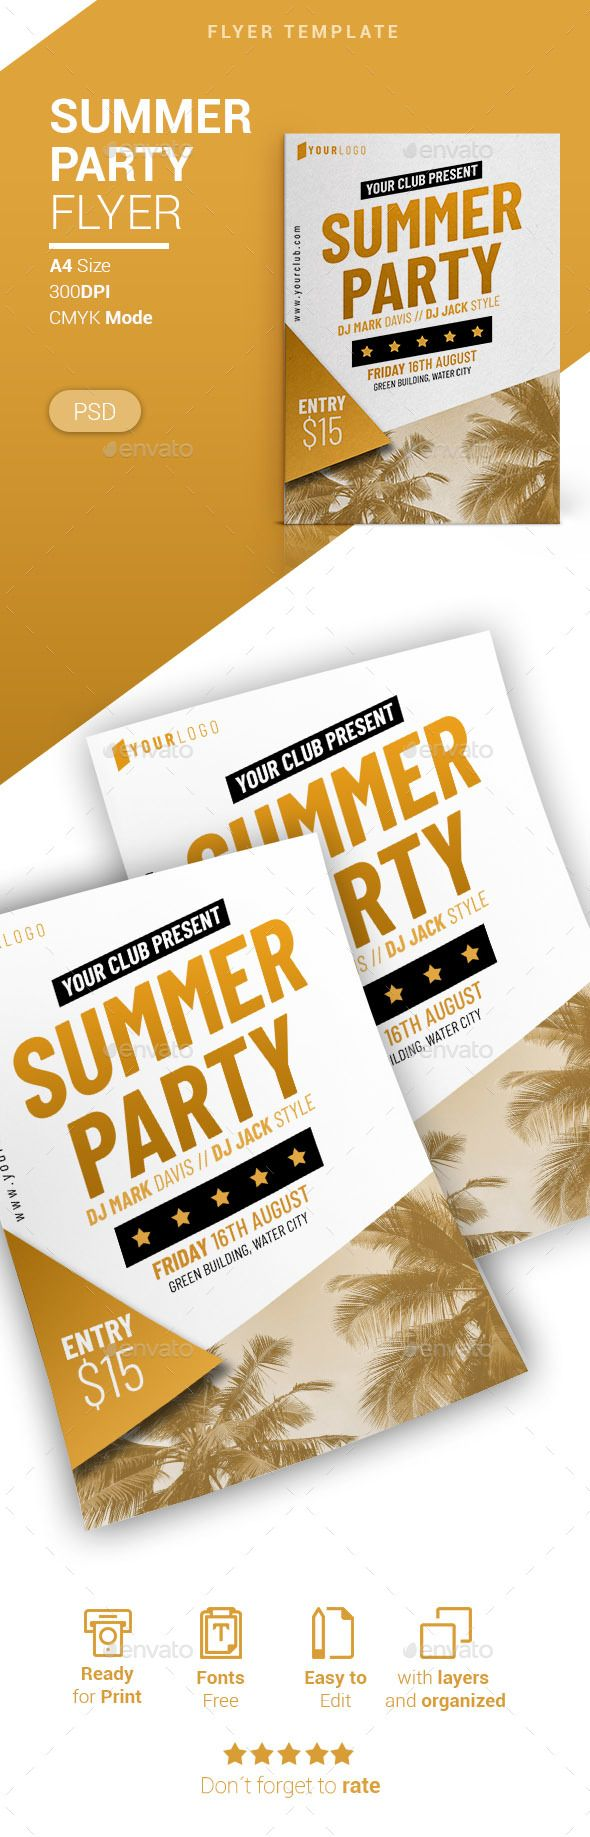 Summer Party Flyer Design Template PSD. Download here: graphicriver.net/...